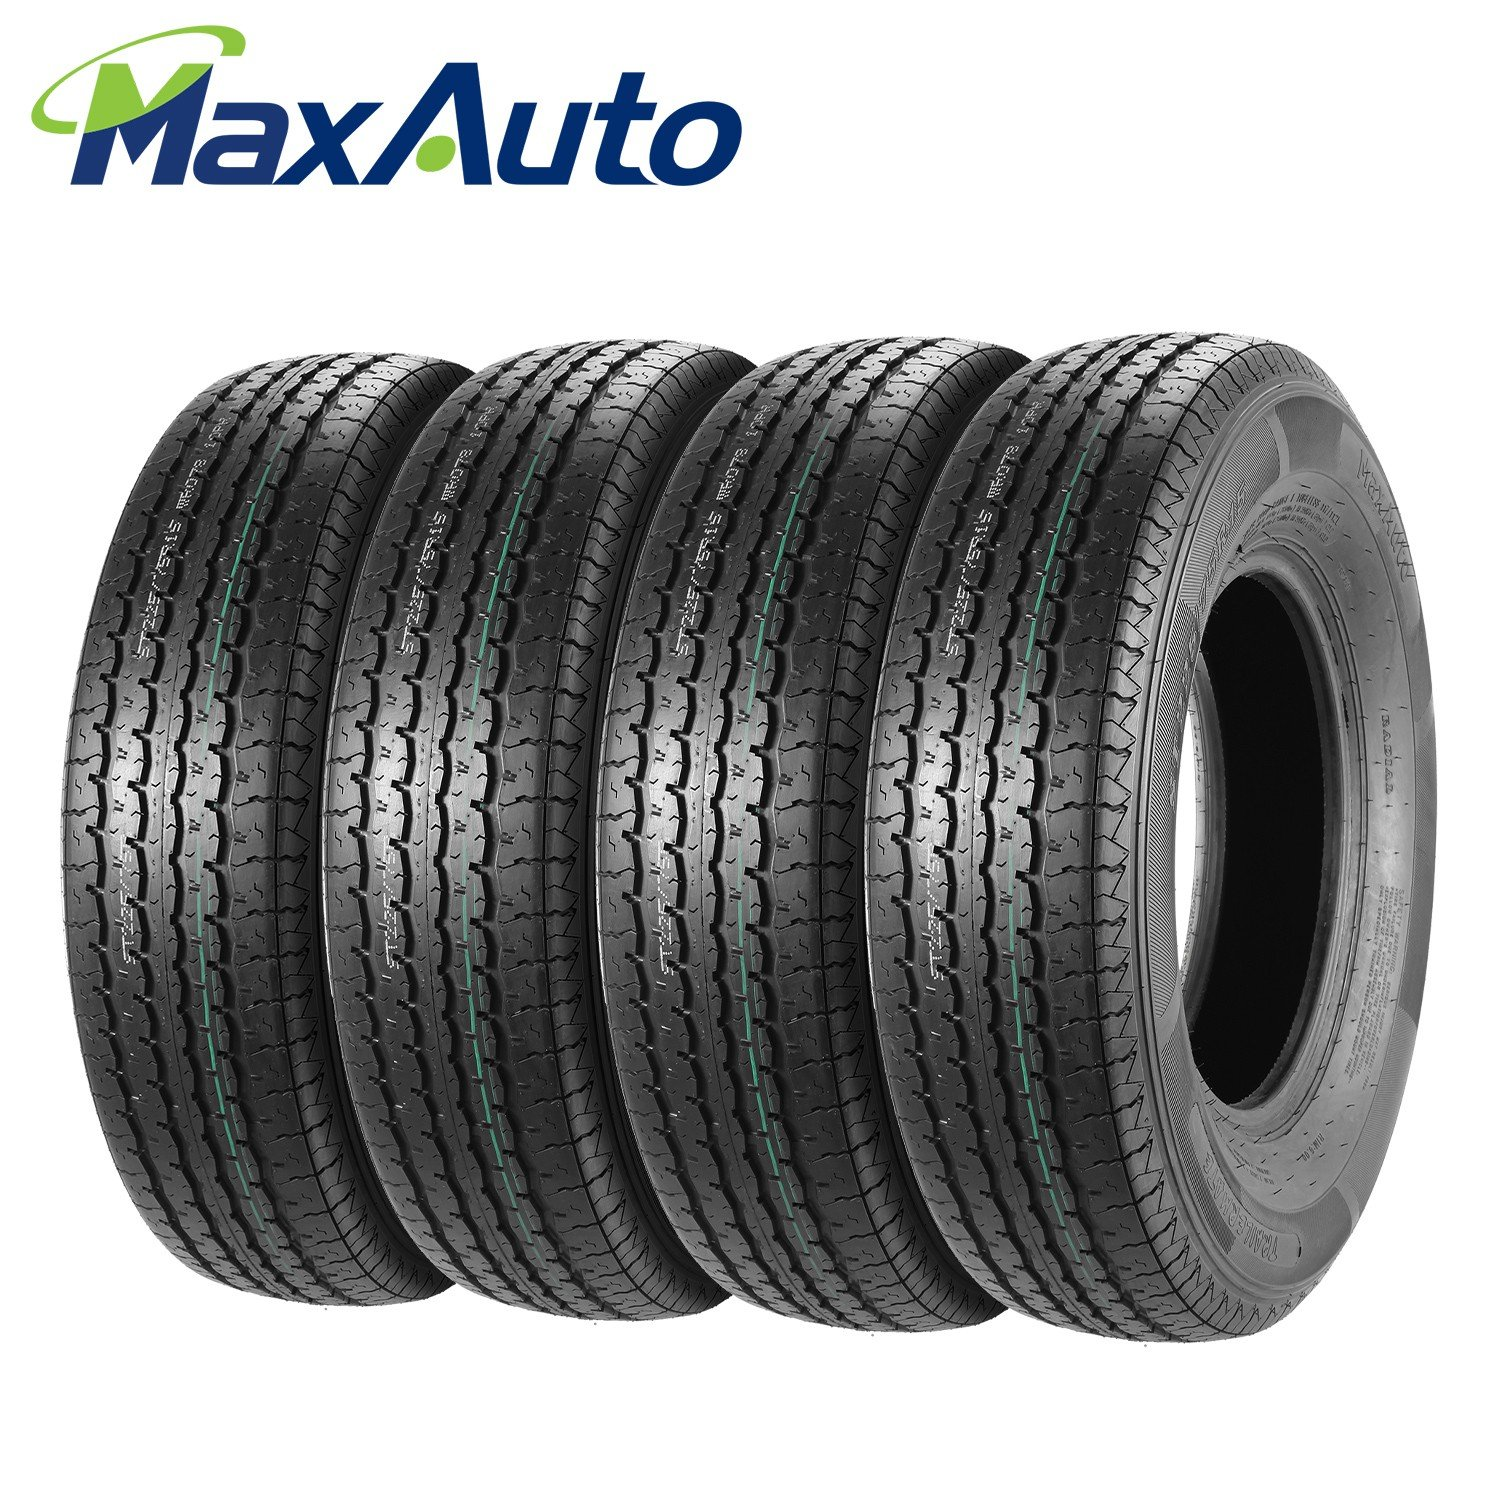 Set of 4 ST225/75R15 MaxAuto Radial Trailer Tires, ST225/75R-15 22575R15 10Ply